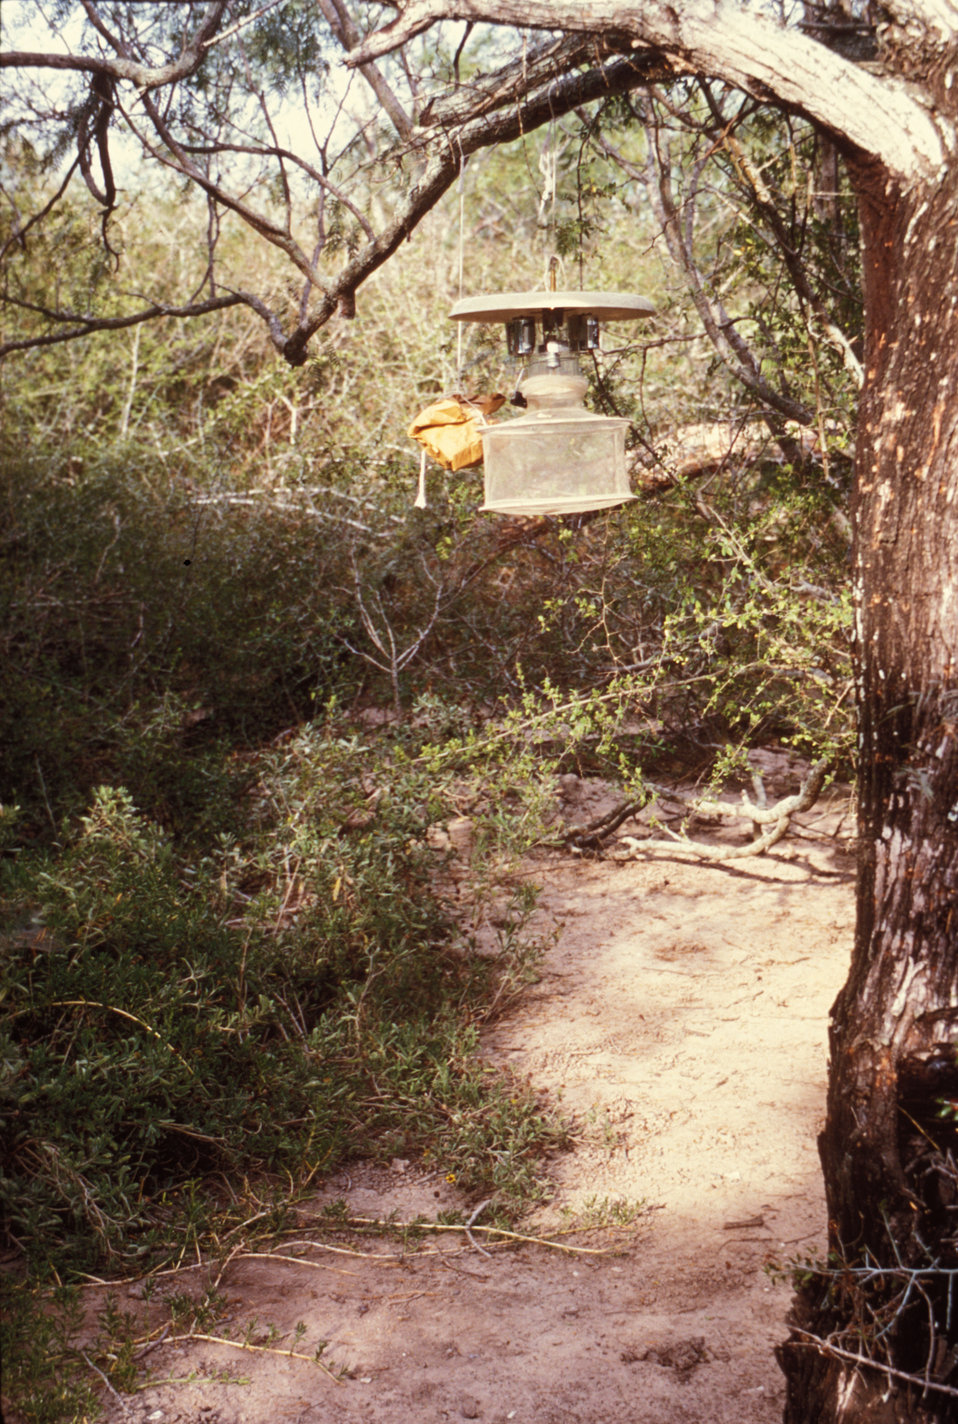 This 1974 photograph shows a CDC light trap used to collect mosquitoes in the field.